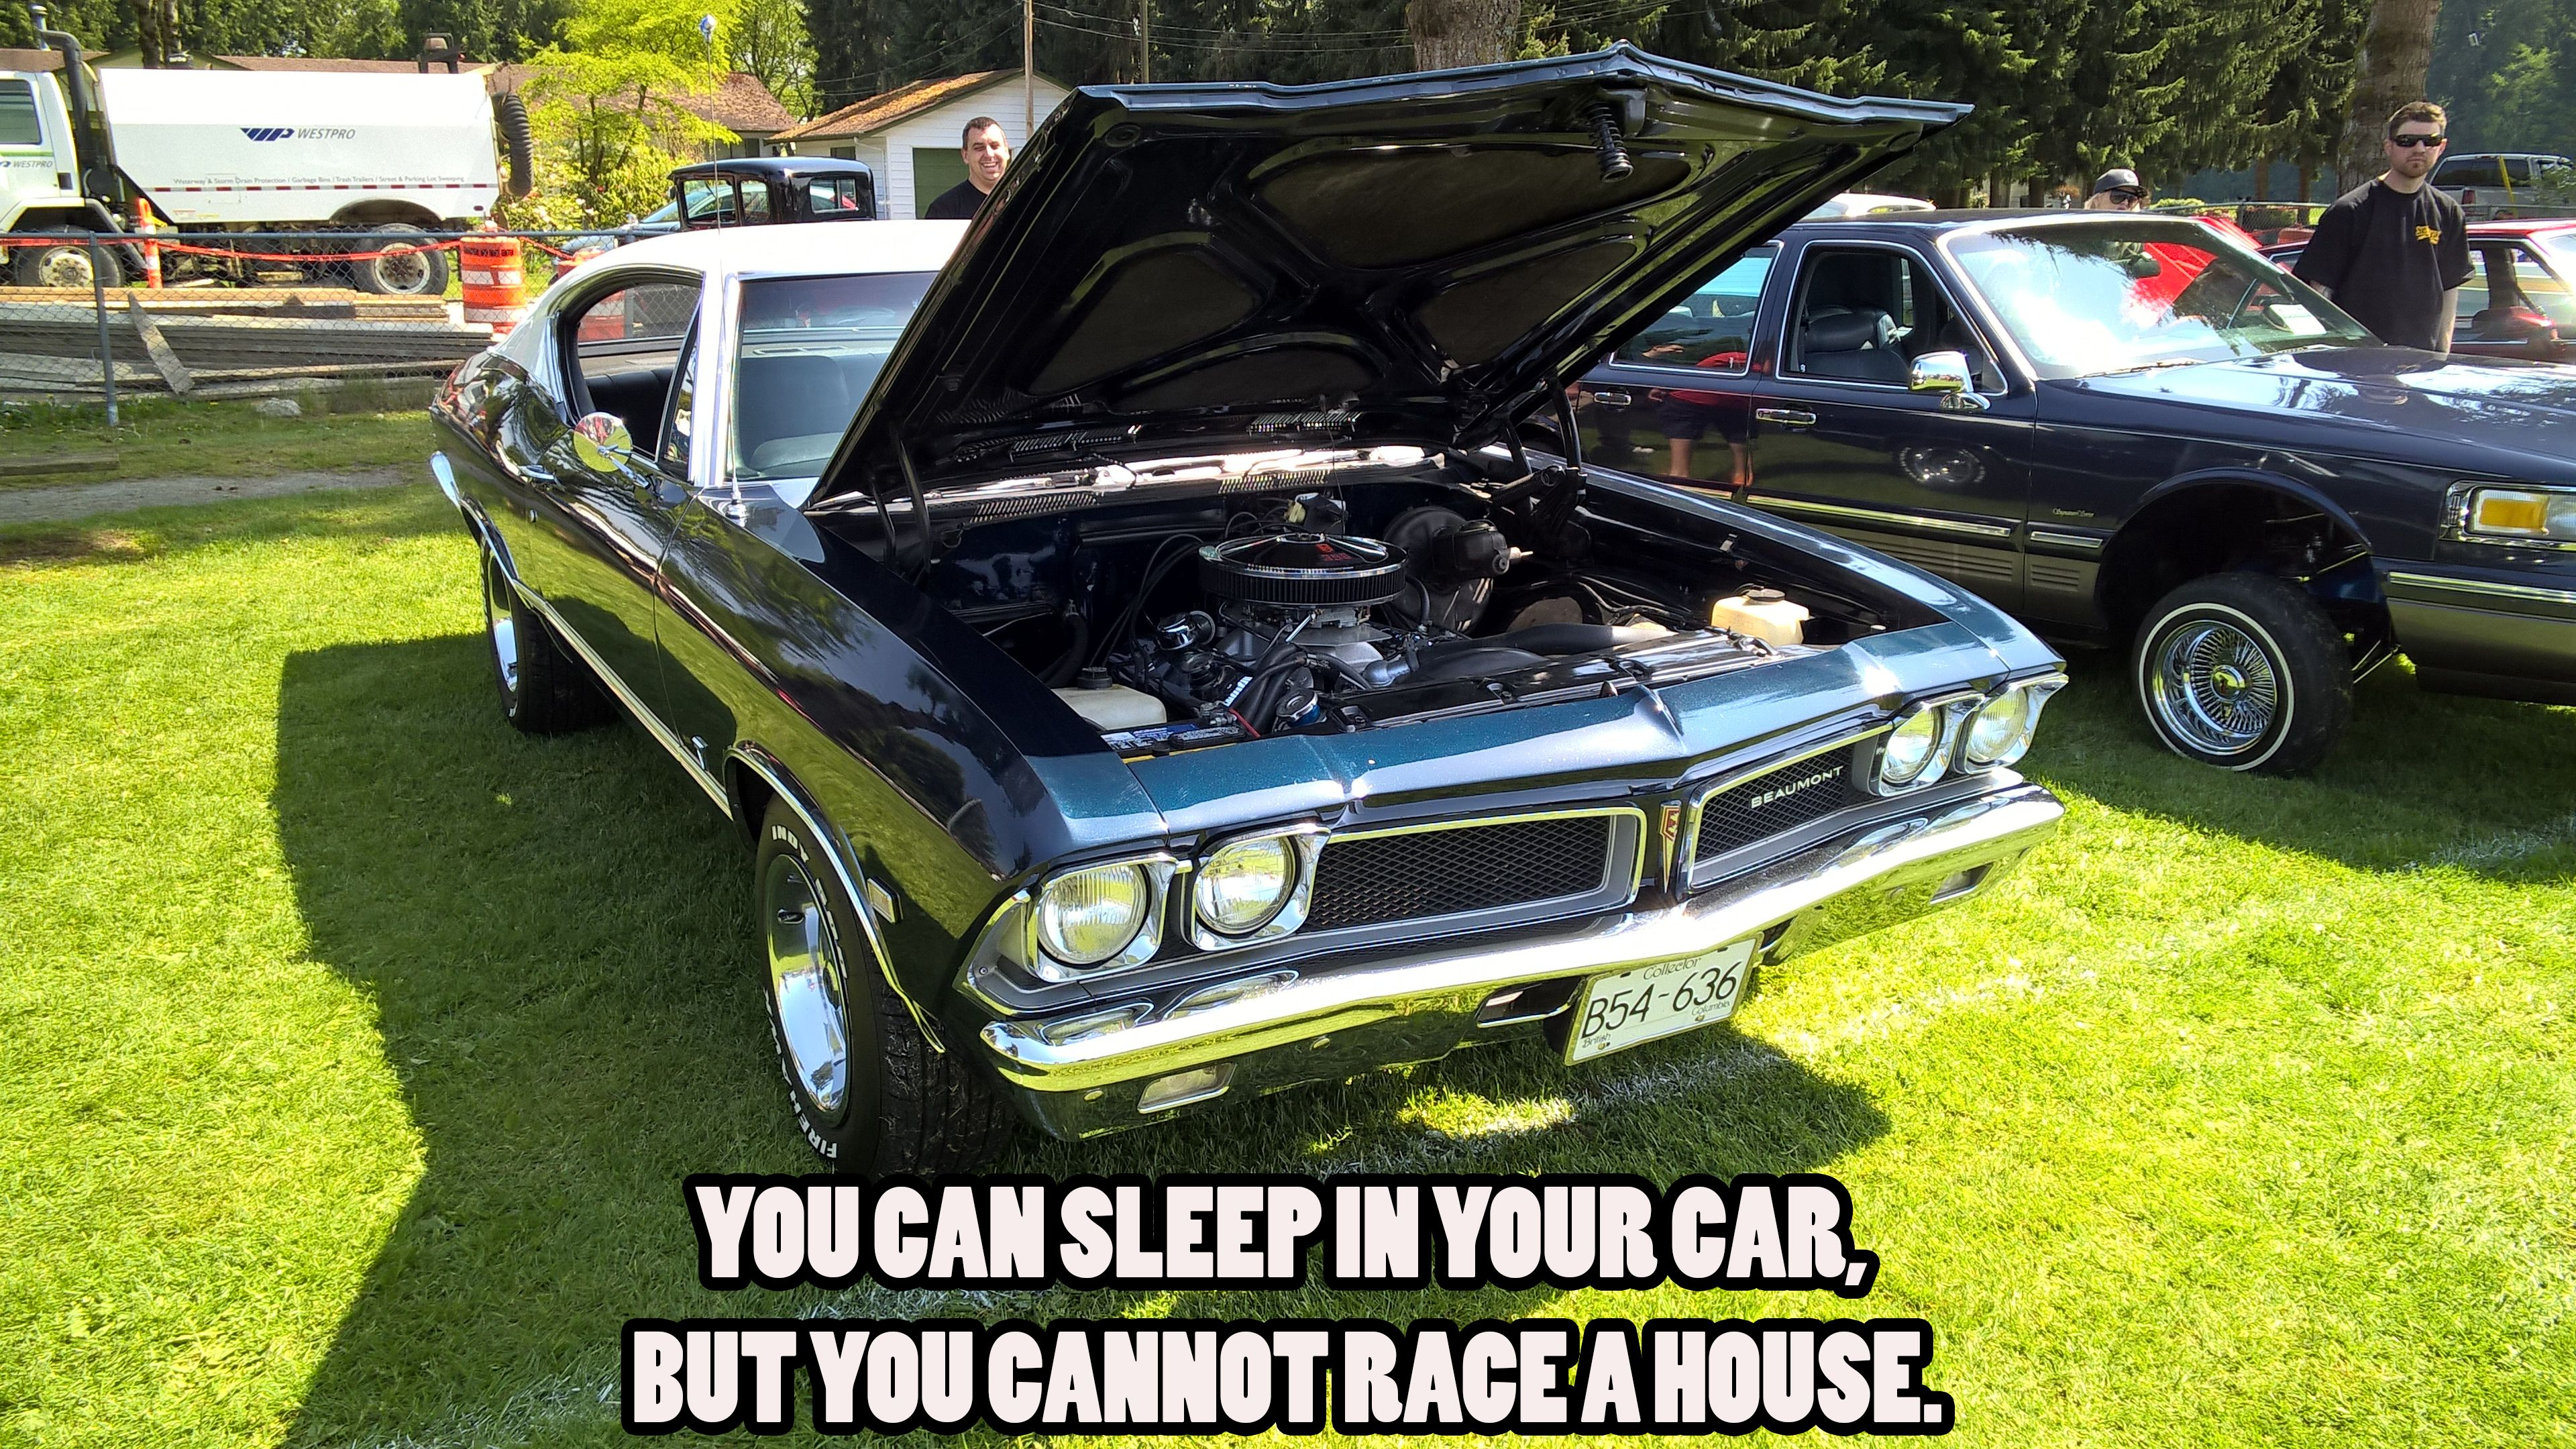 You Can Sleep In Your Car But You Cannot Race A House Https